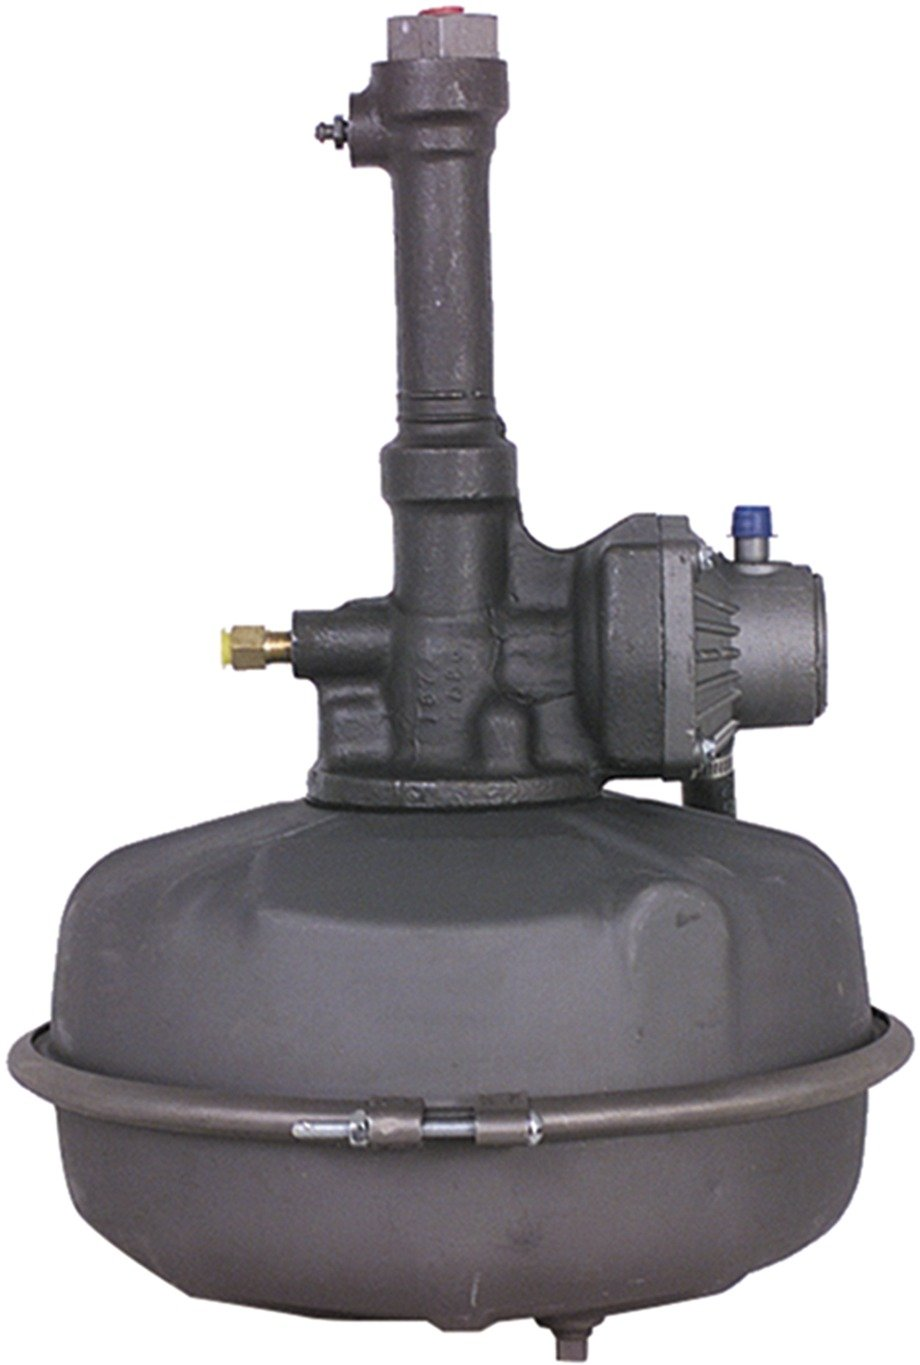 Cardone 51-8001 Remanufactured Hydrovac Booster by A1 Cardone